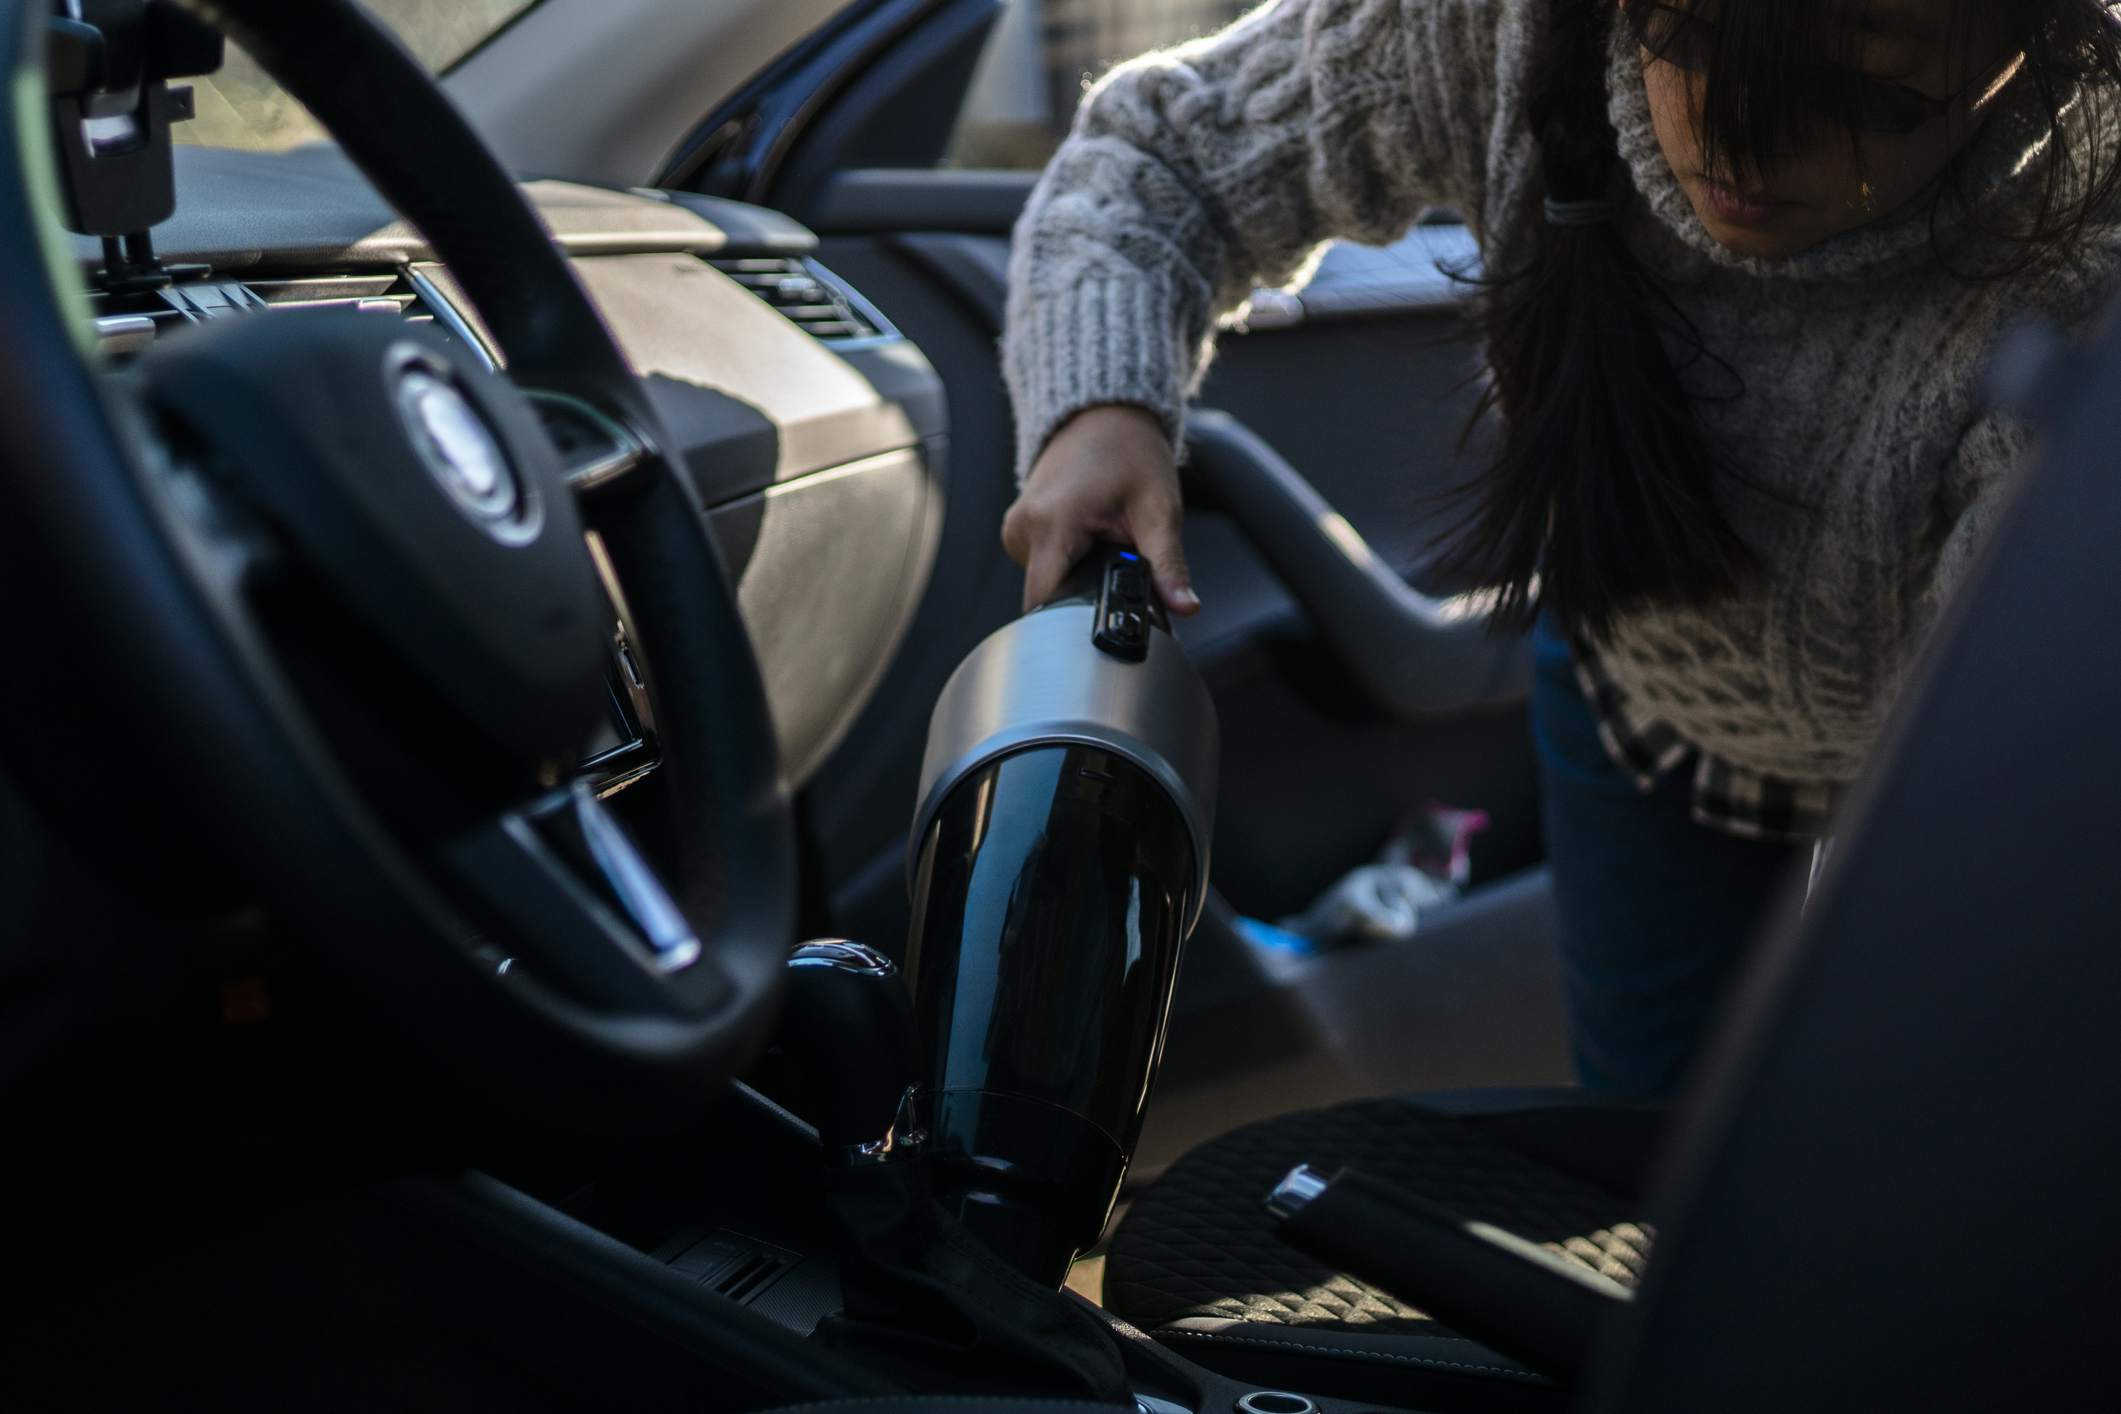 girl cleaning car with portable cleaner